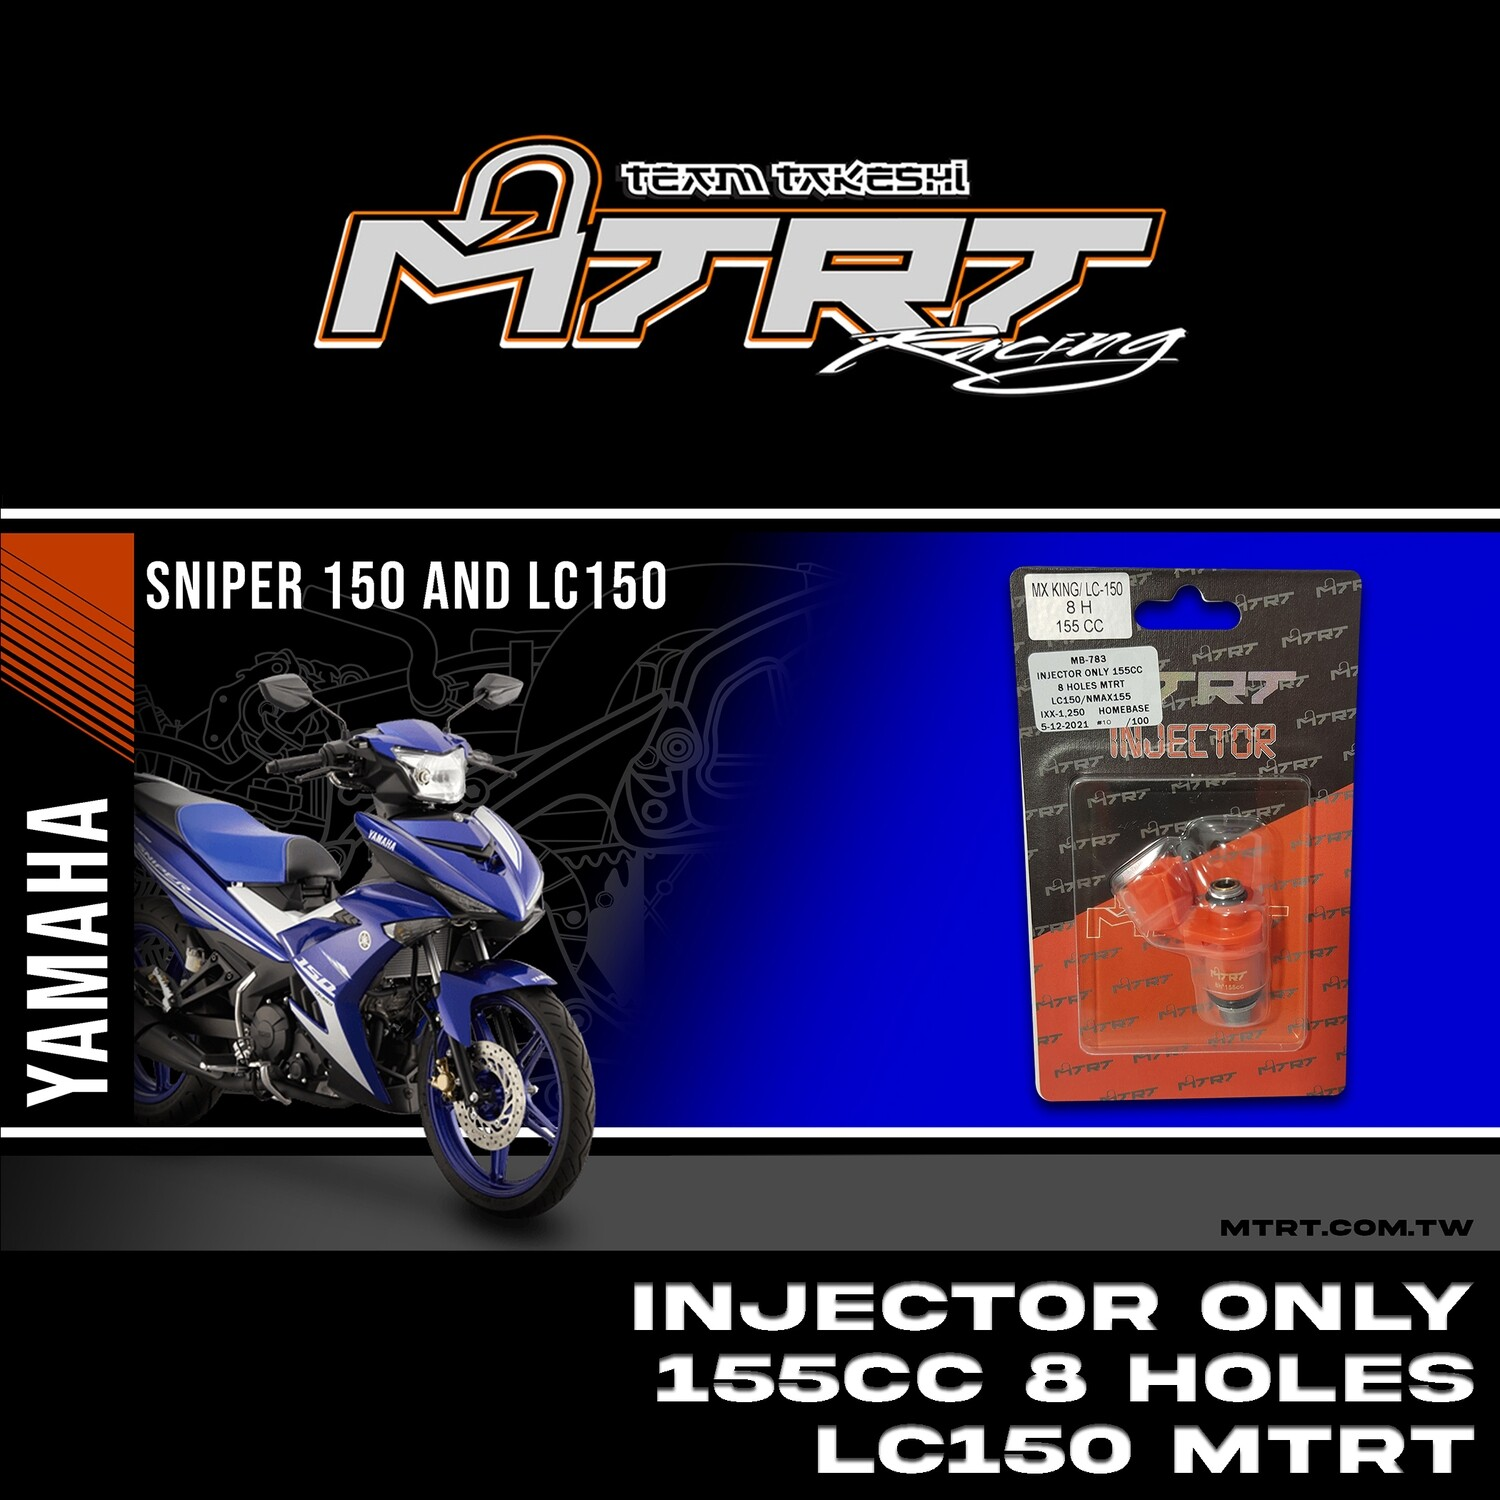 INJECTOR ONLY 155CC 8HOLES  LC150/NMAX155/MXI   MTRT